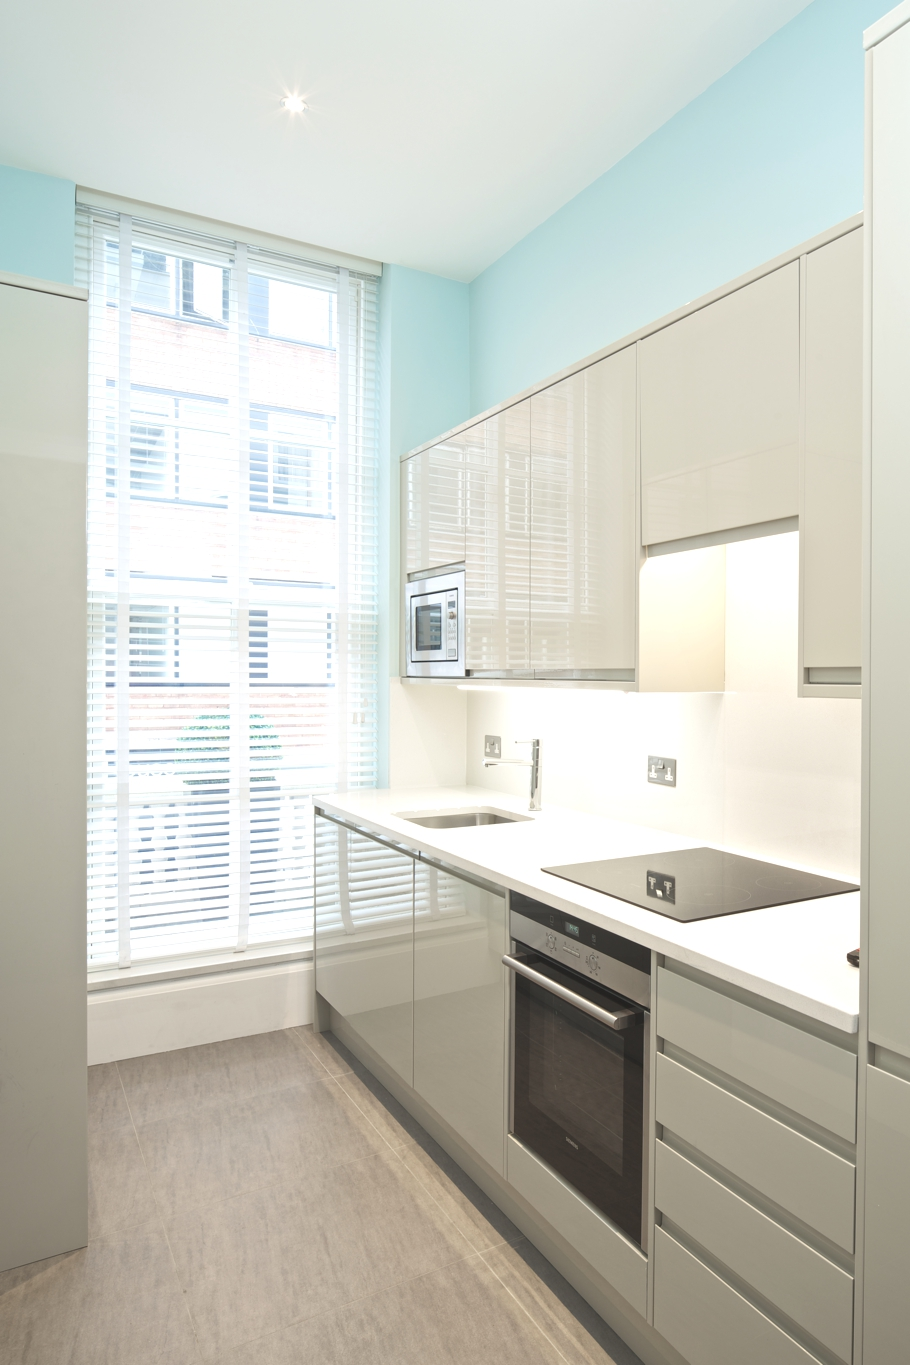 Luxury-Apartment-Flemings-Mayfair-London-Adelto-03